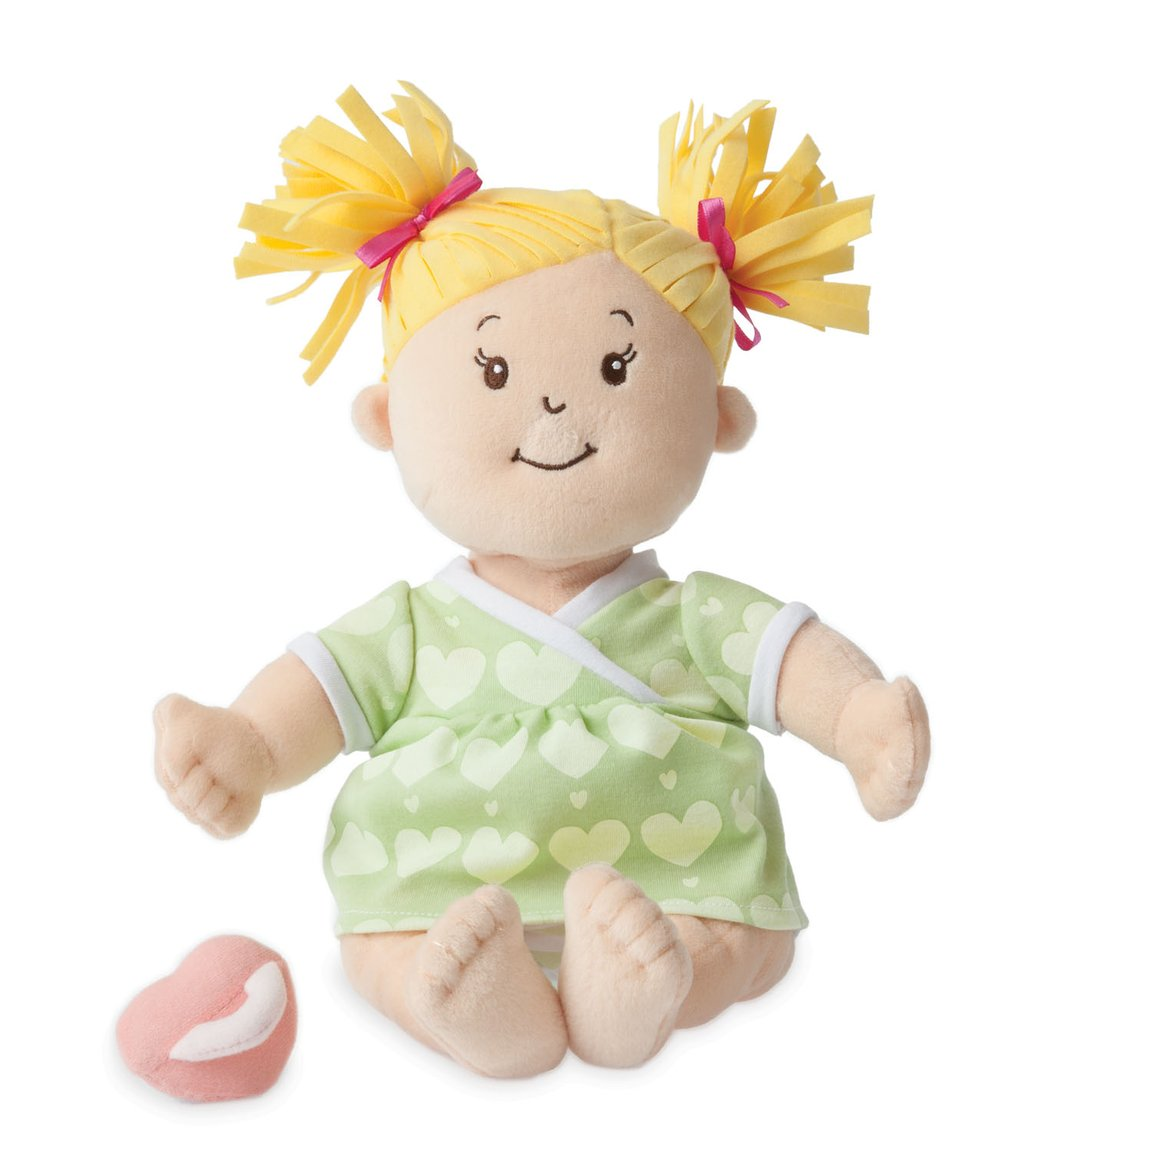 Manhattan Toy | Baby Stella Blonde Soft Plush Baby Doll